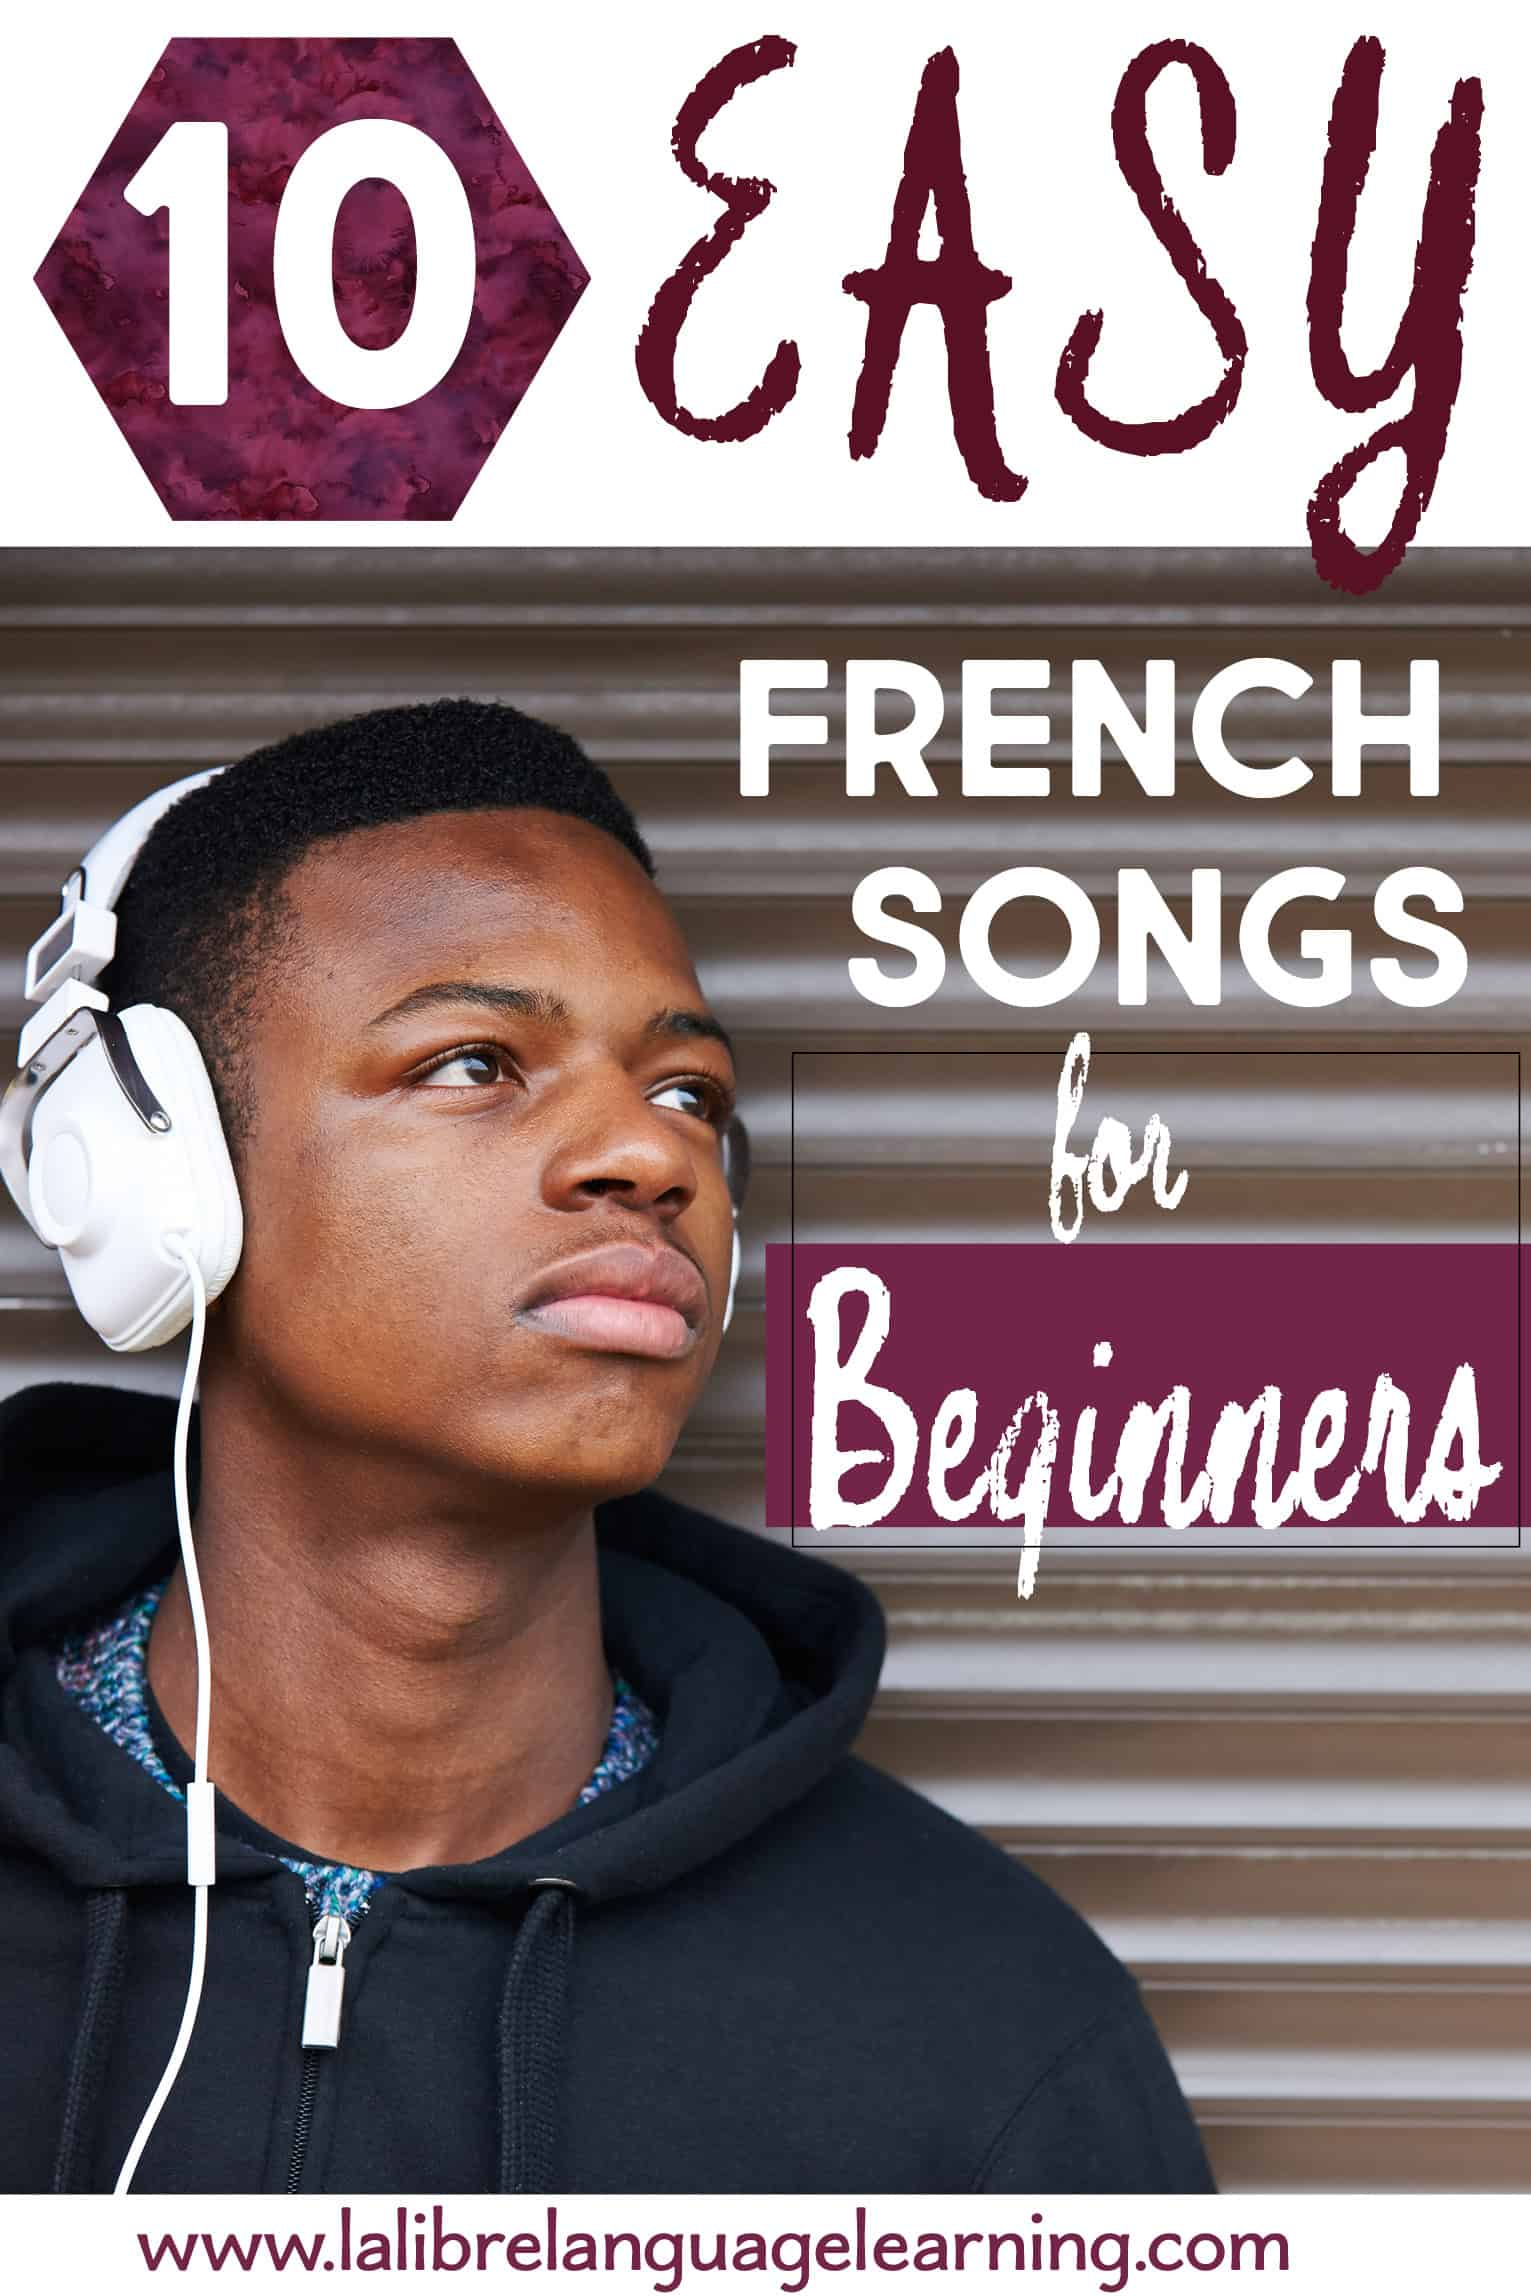 10 Easy French Songs For Beginners